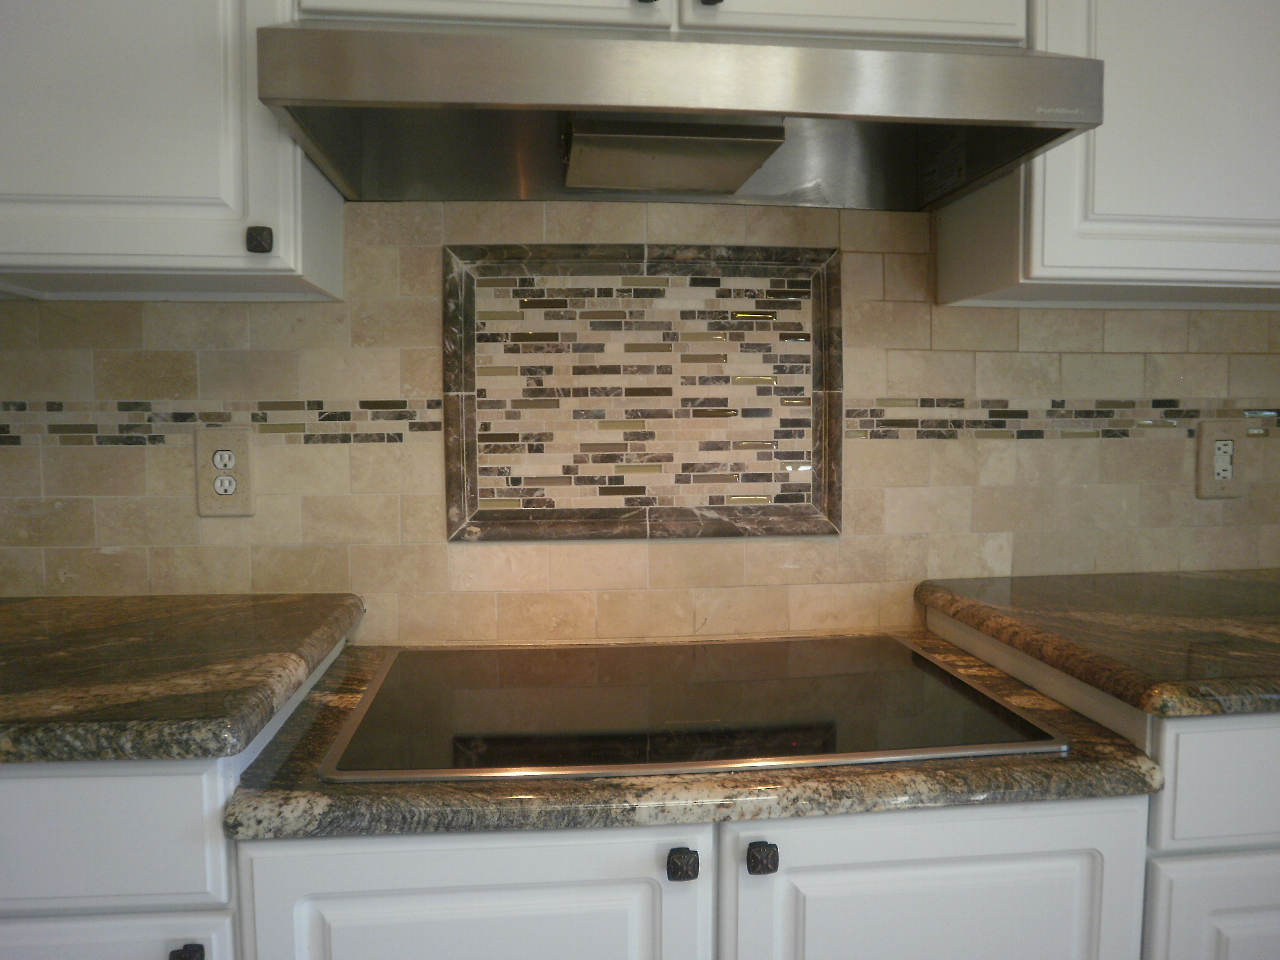 Kitchen Backsplash Ideas Glass Tile | afreakatheart